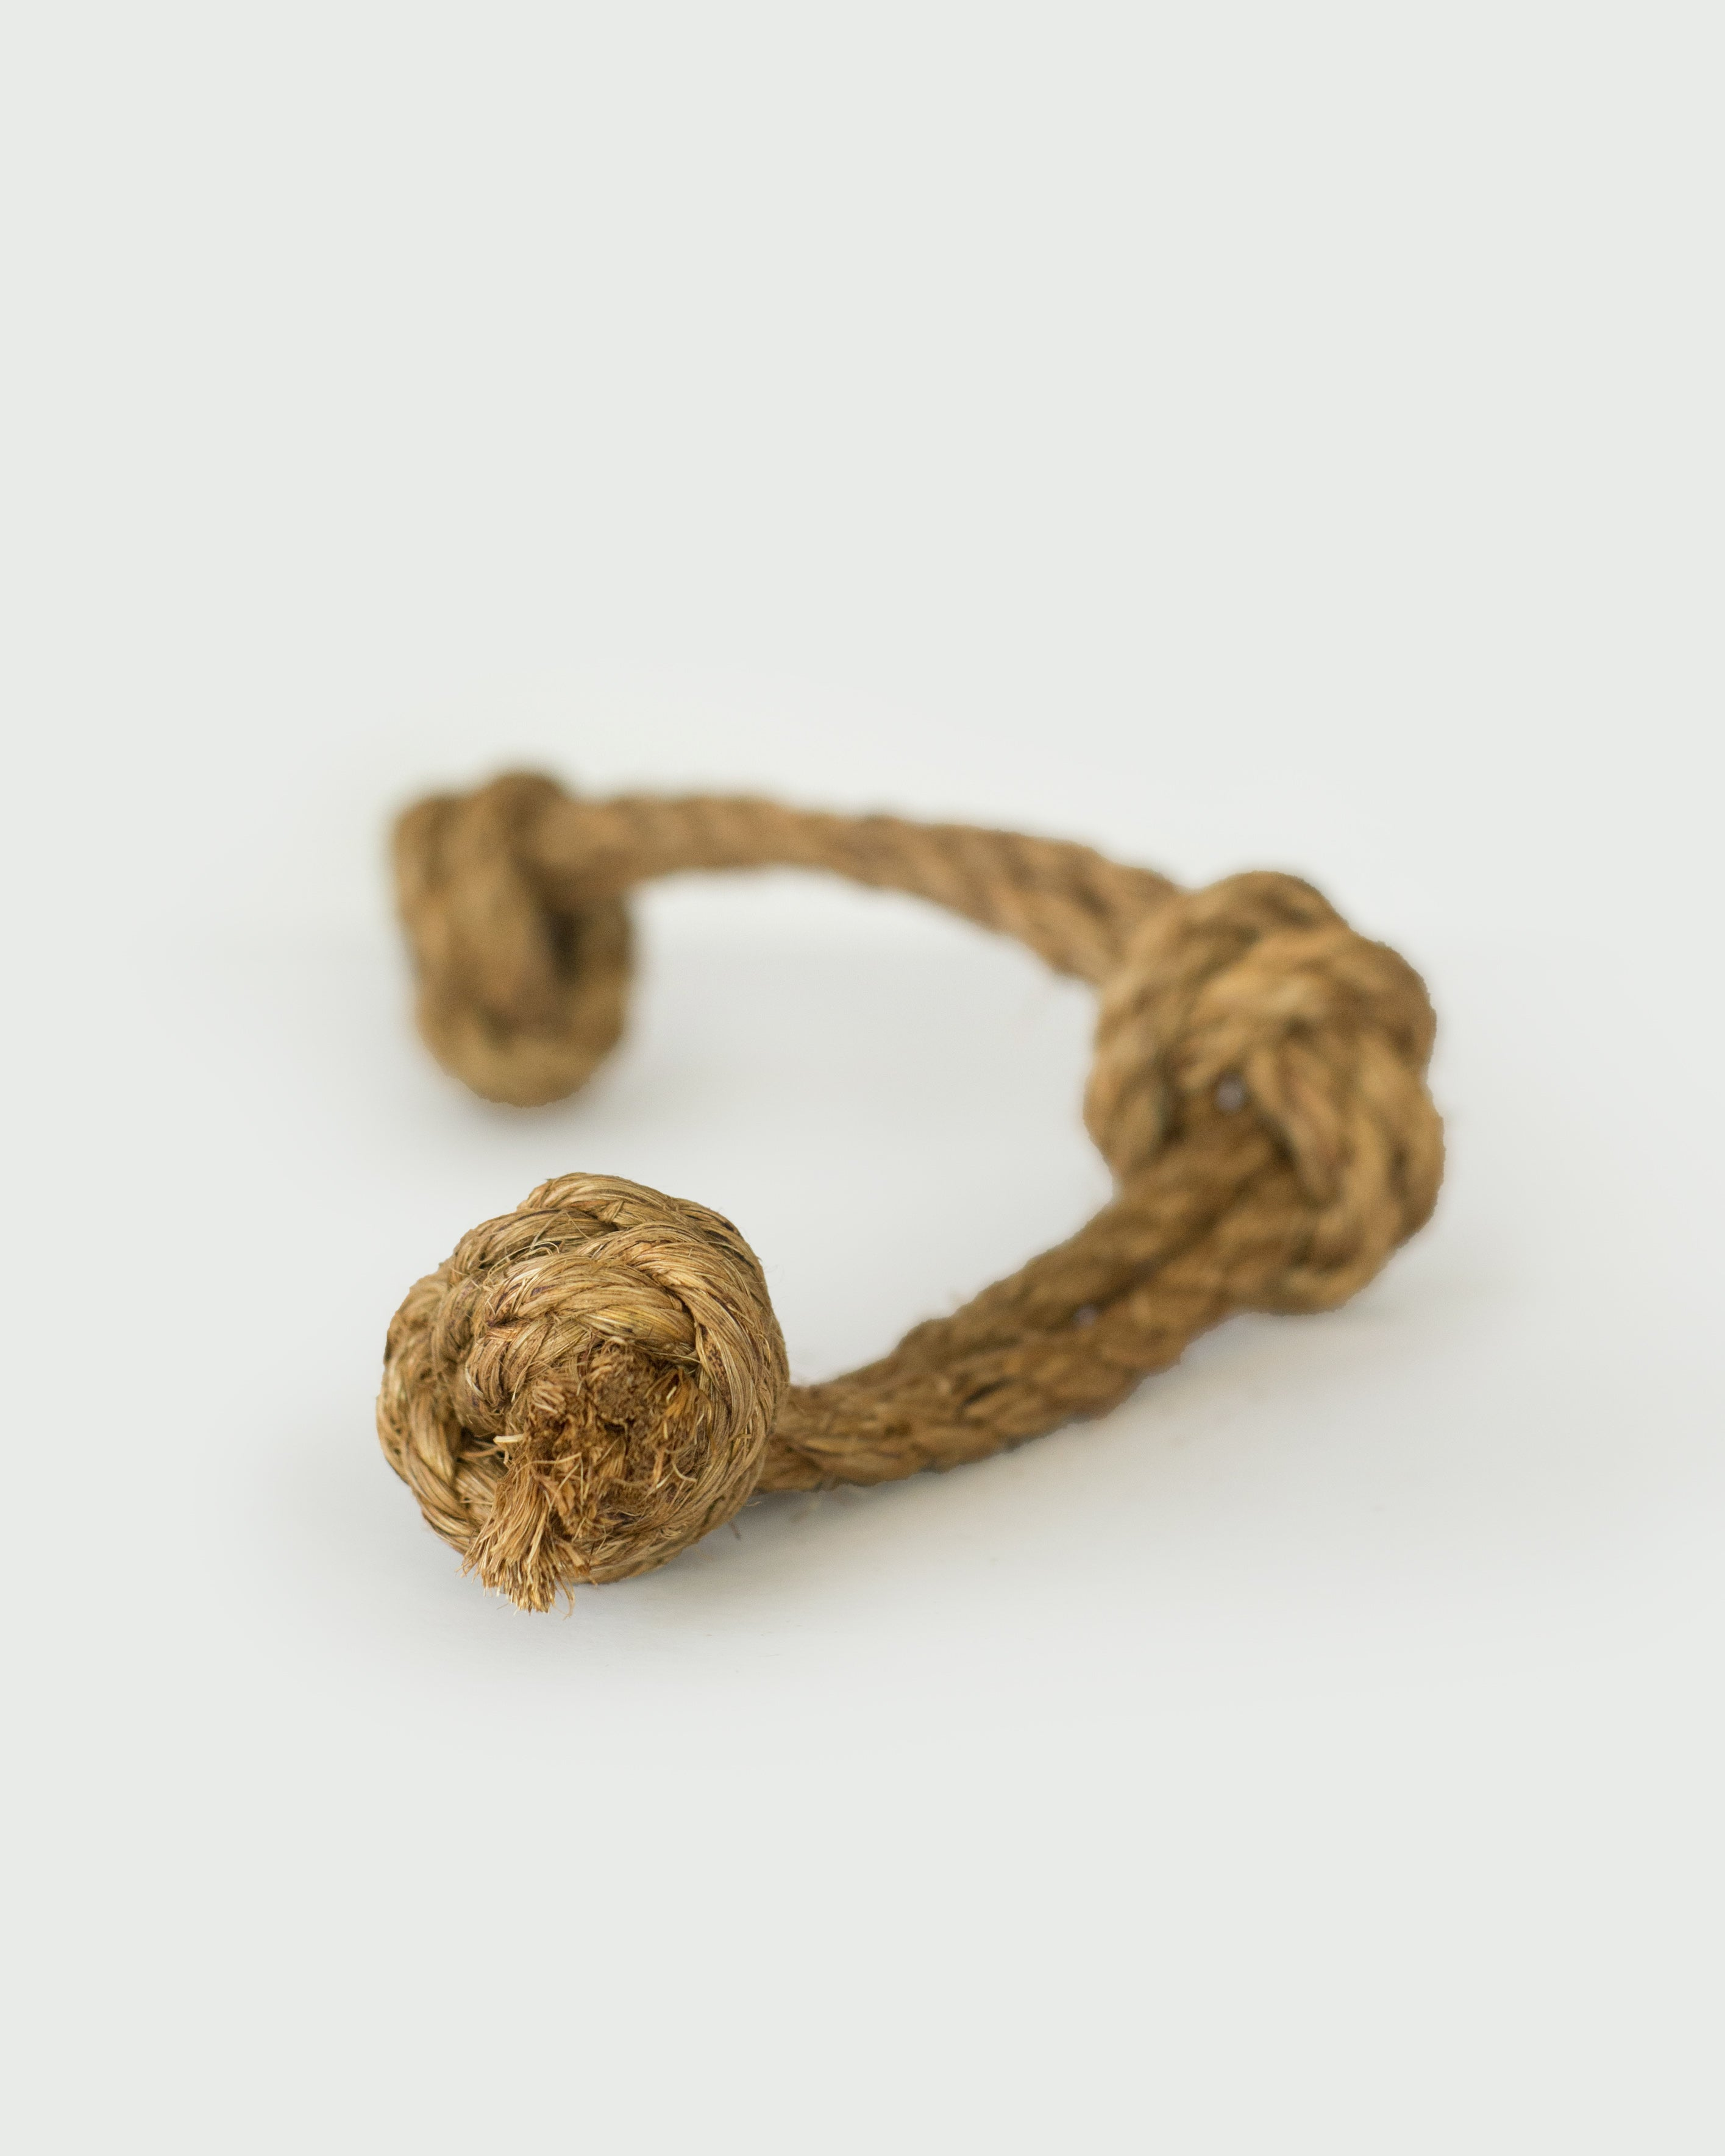 Abaca 3 Knot Tug Toy